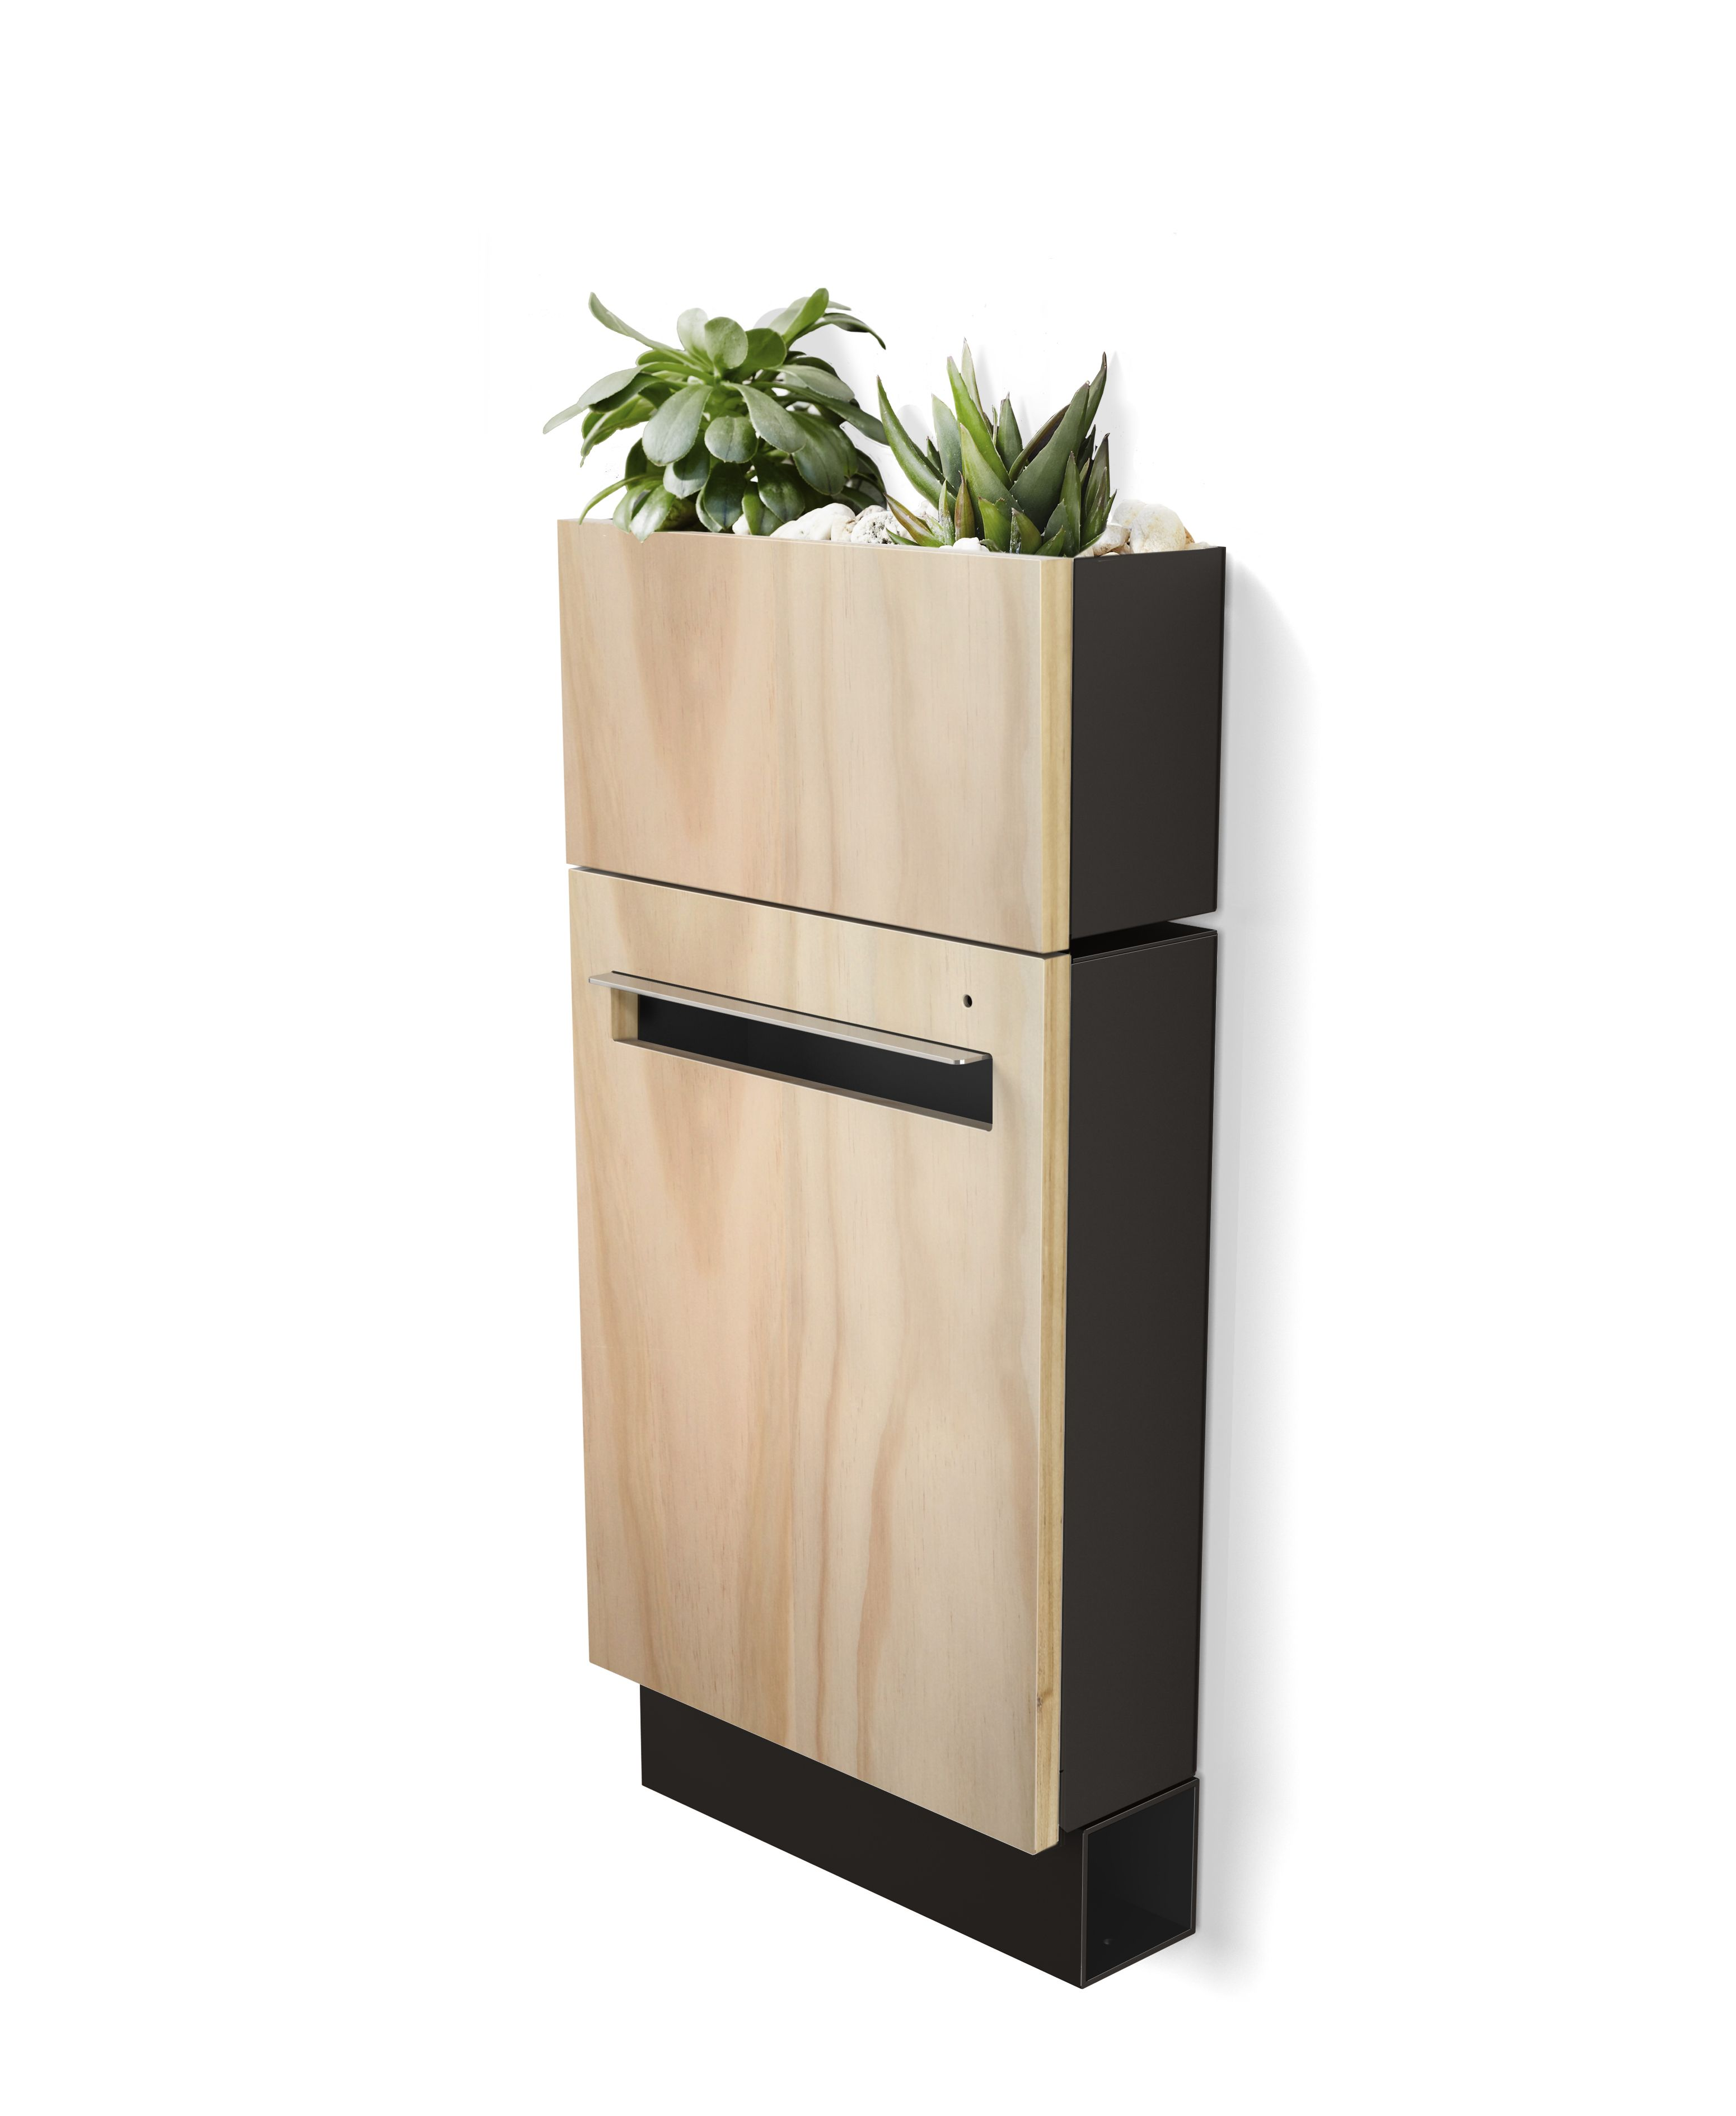 Javi Wall Mount Letterbox Planter And Newspaper Holder Modern Mailbox Newspaper Holder Letter Box